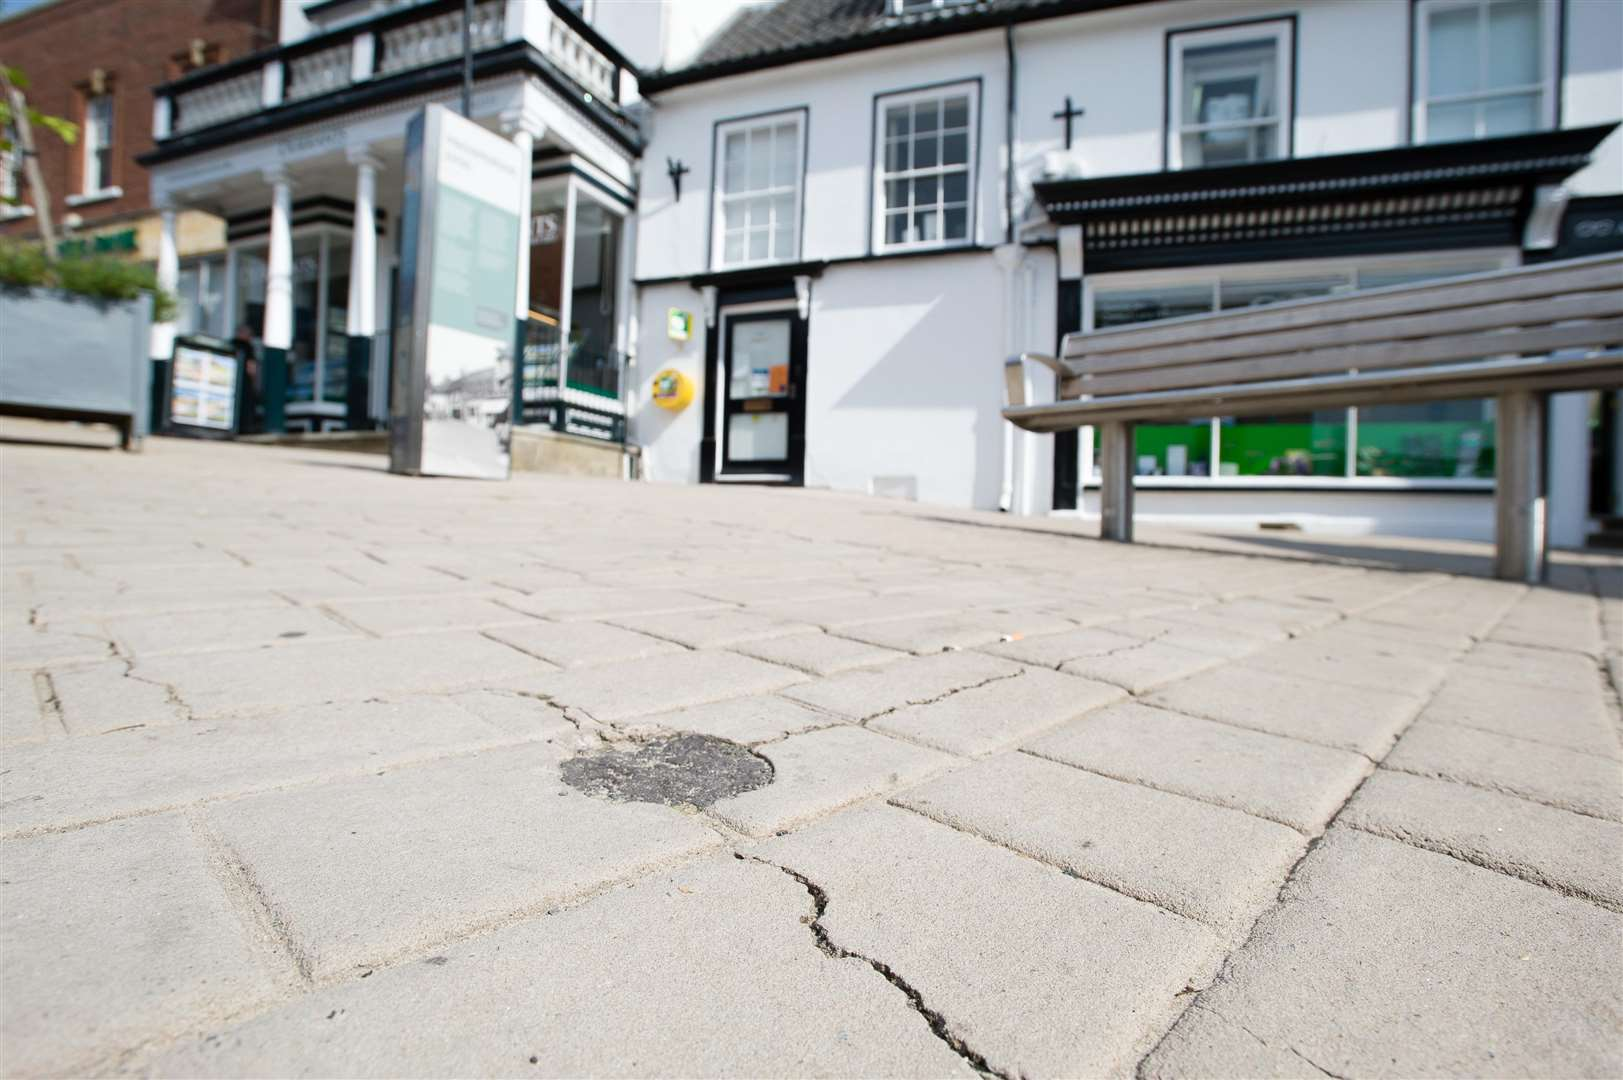 Cracks in the pavement on Market Hill in Diss.